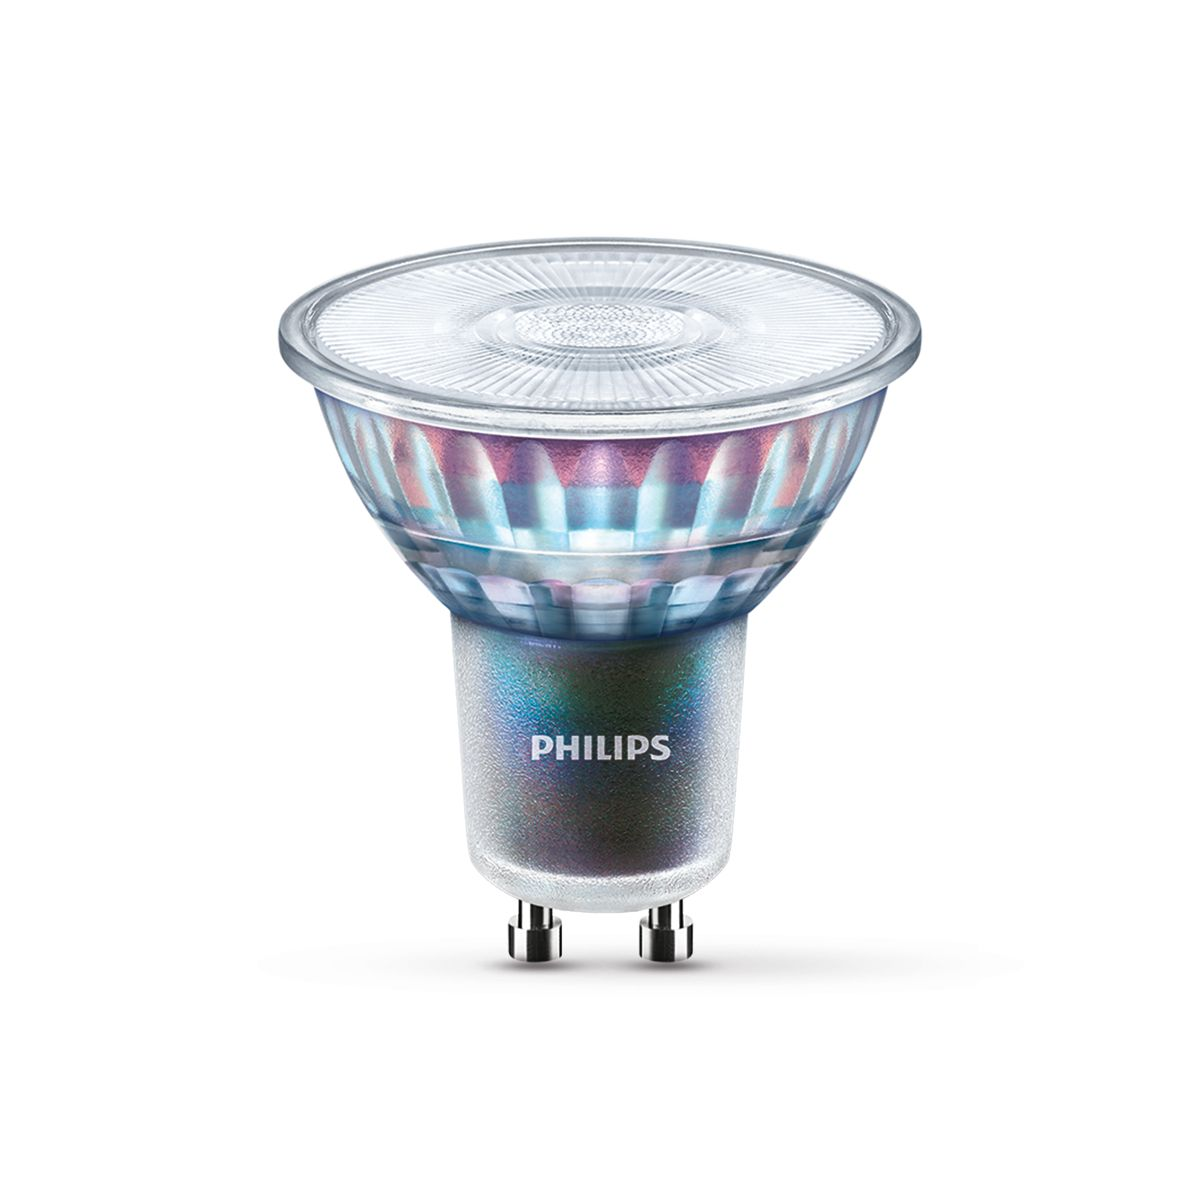 Catalogo Lamparas Philips Focos Y Bombillas Led Philips Lighting